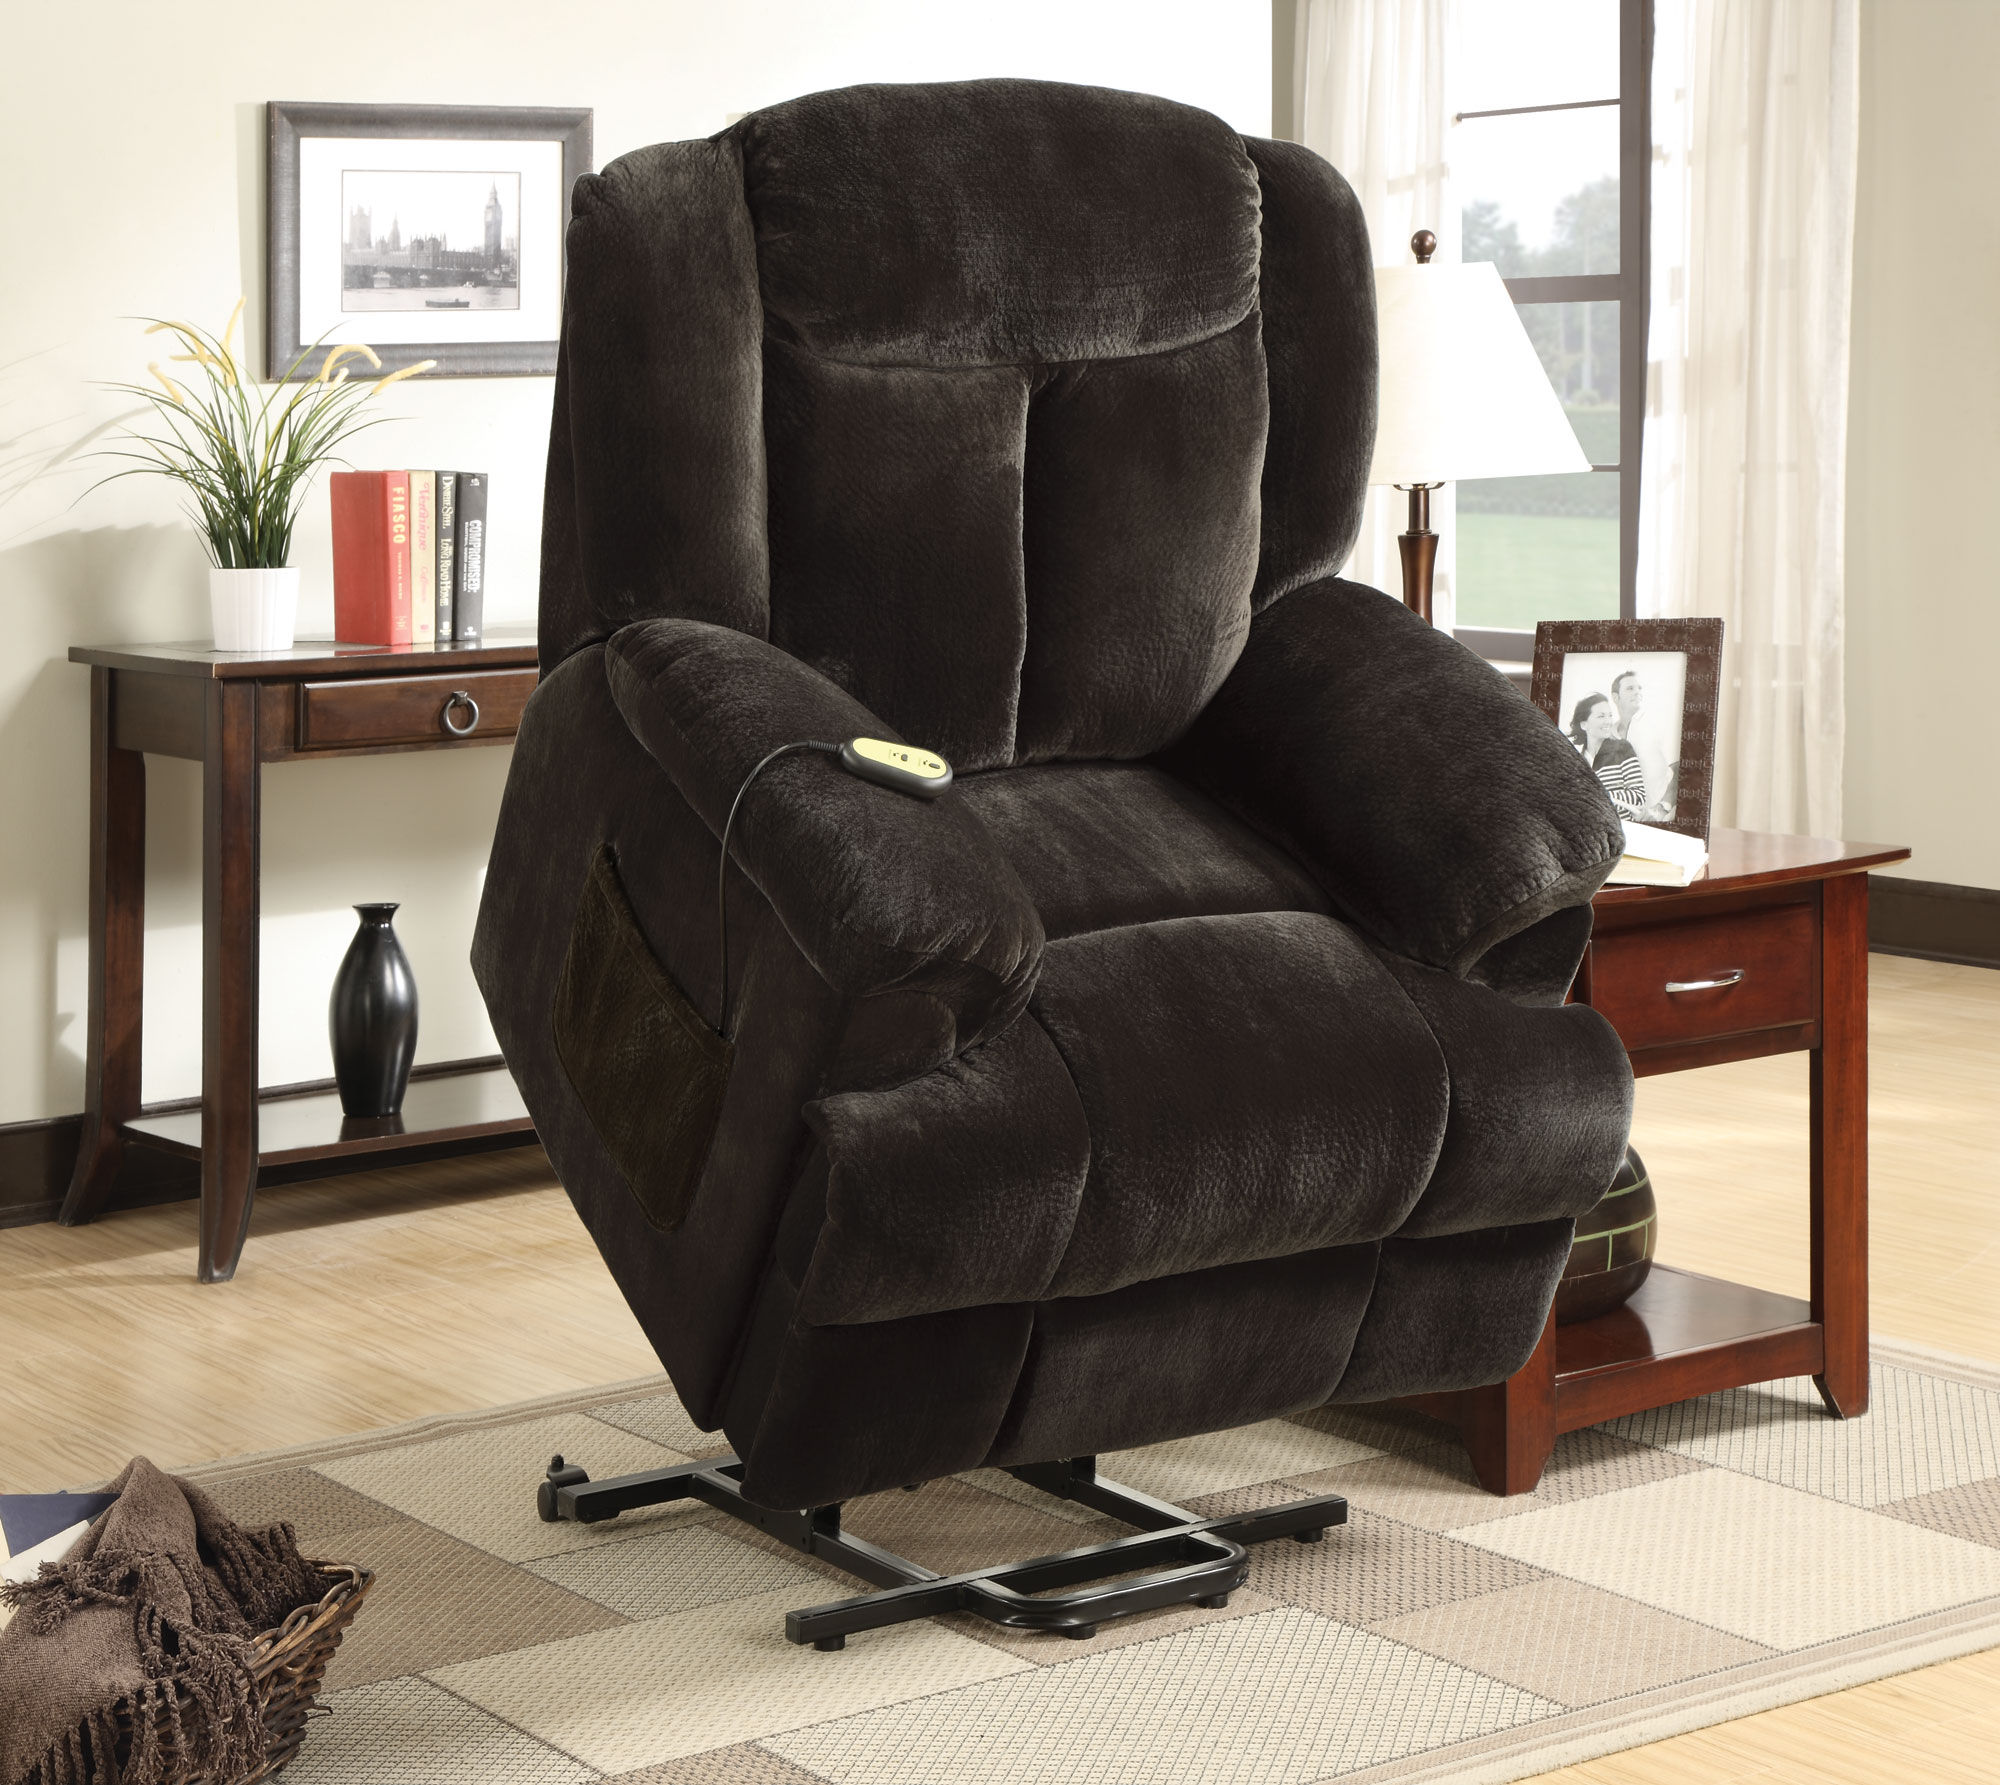 Coaster Living Room Power Lift Recliners 600173 in black on wooden floor with checked carpet for living room decor ideas